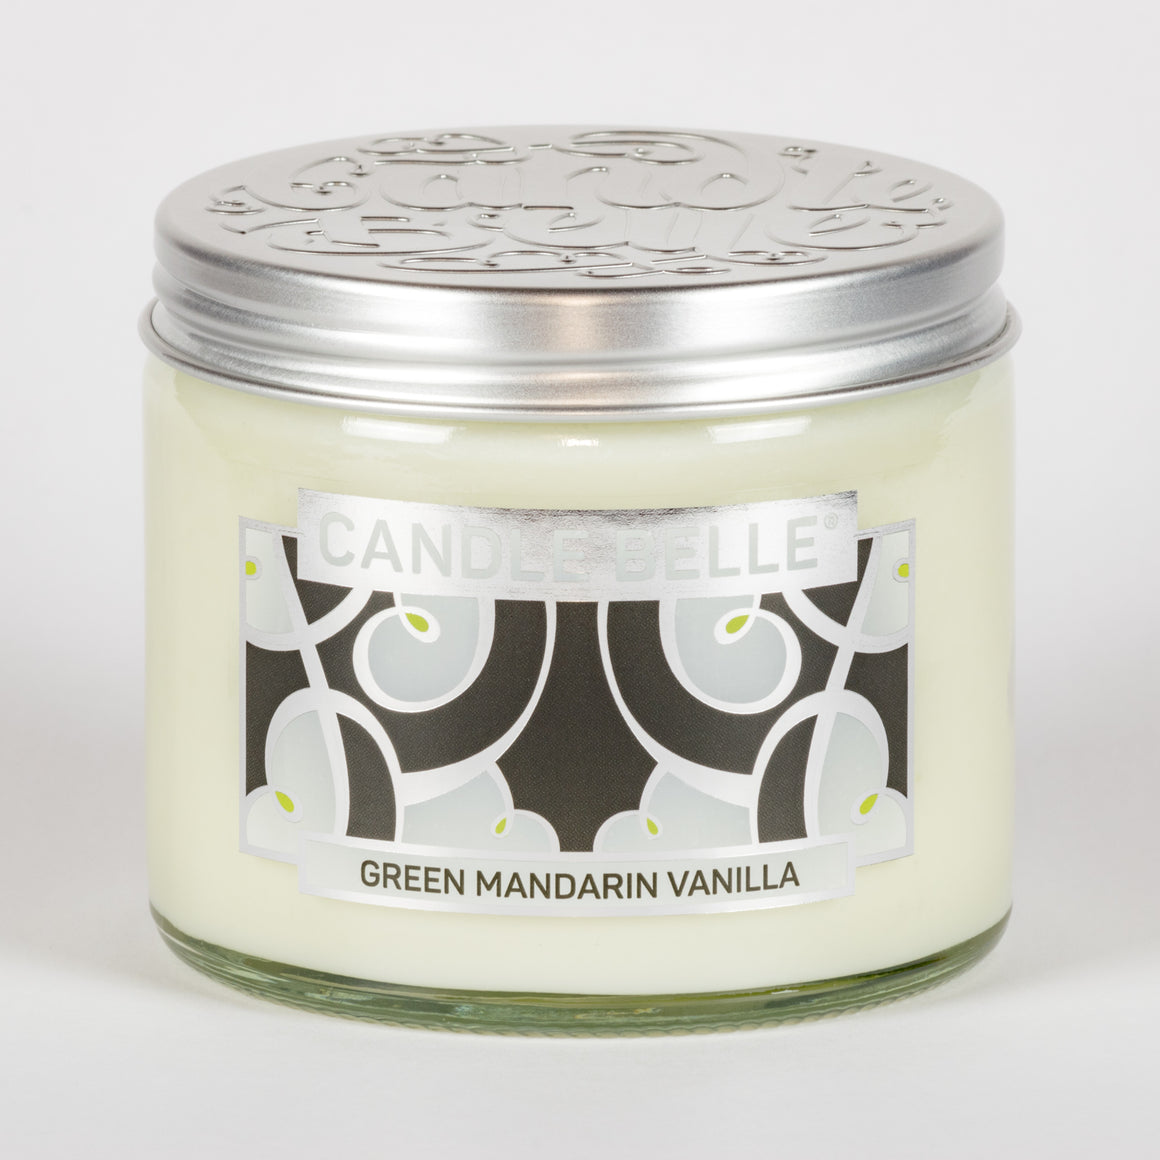 Candle Belle® DECO Green Mandarin Vanilla Fragranced Twin Wick Jar Candle 240g (3 Pack)